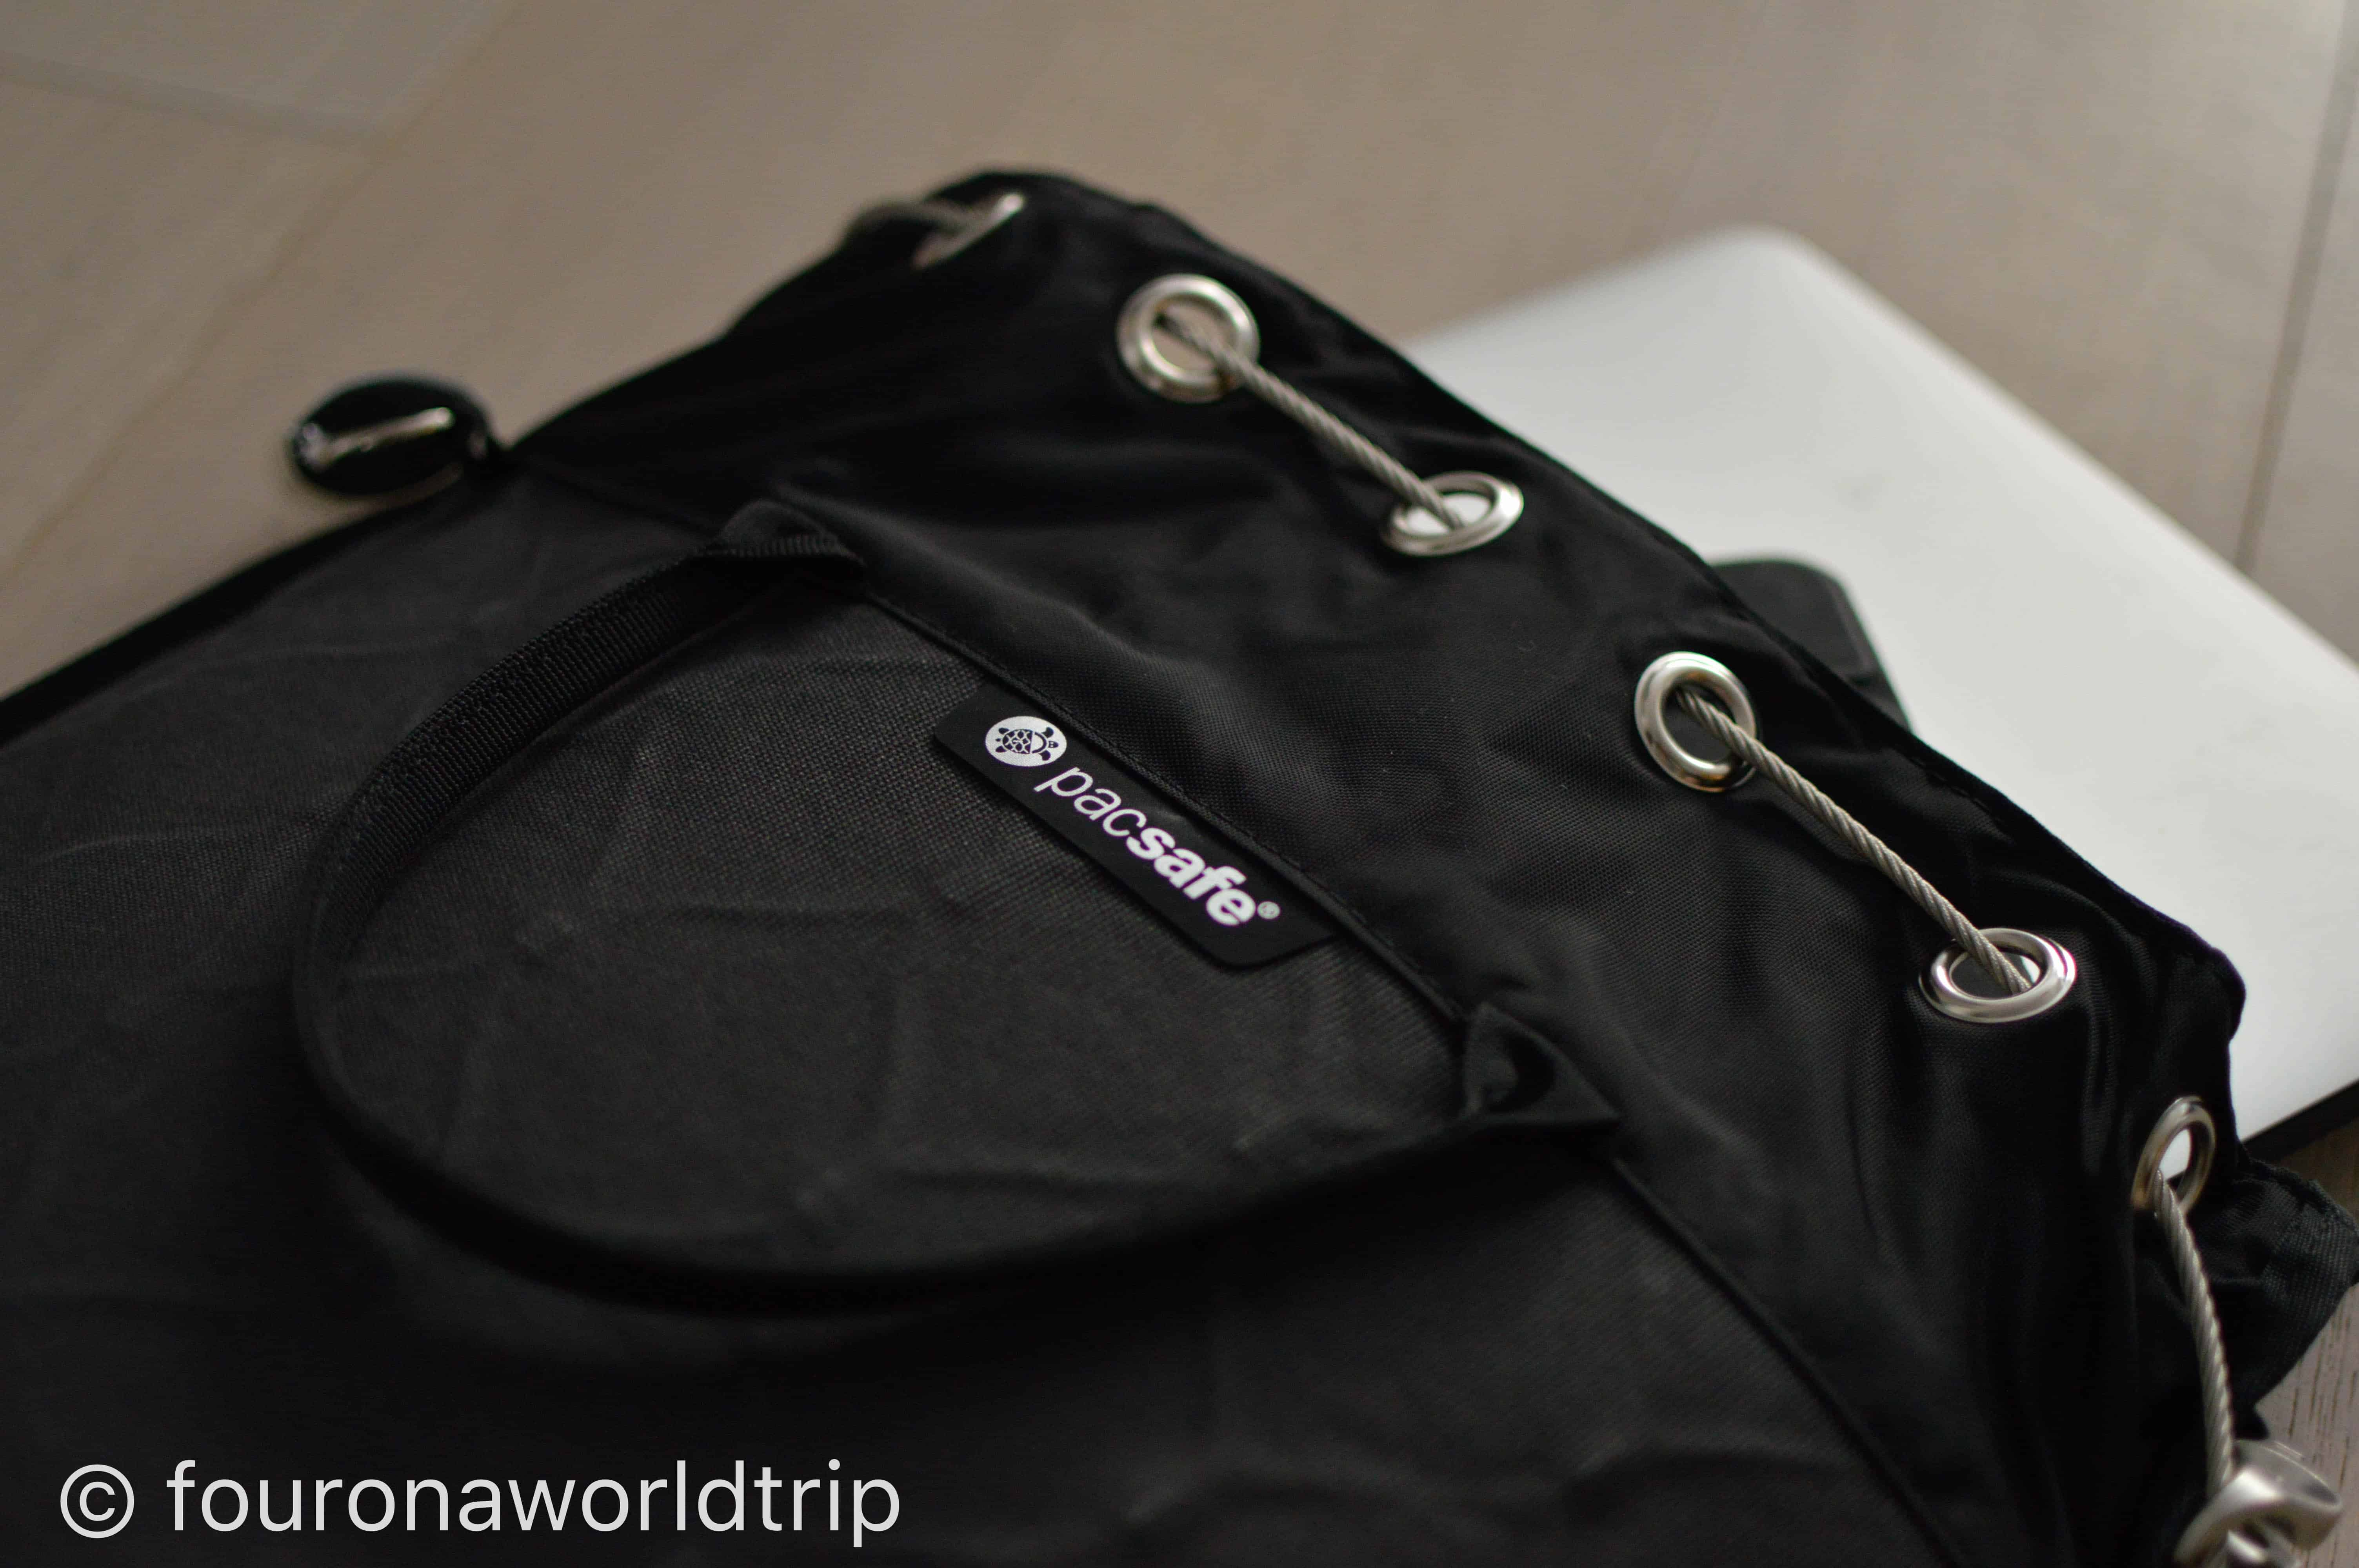 The 12l travel safe from pacsafe has enough capacity to hold your Laptop, a tablet, your phone, documents and/or your camera gear